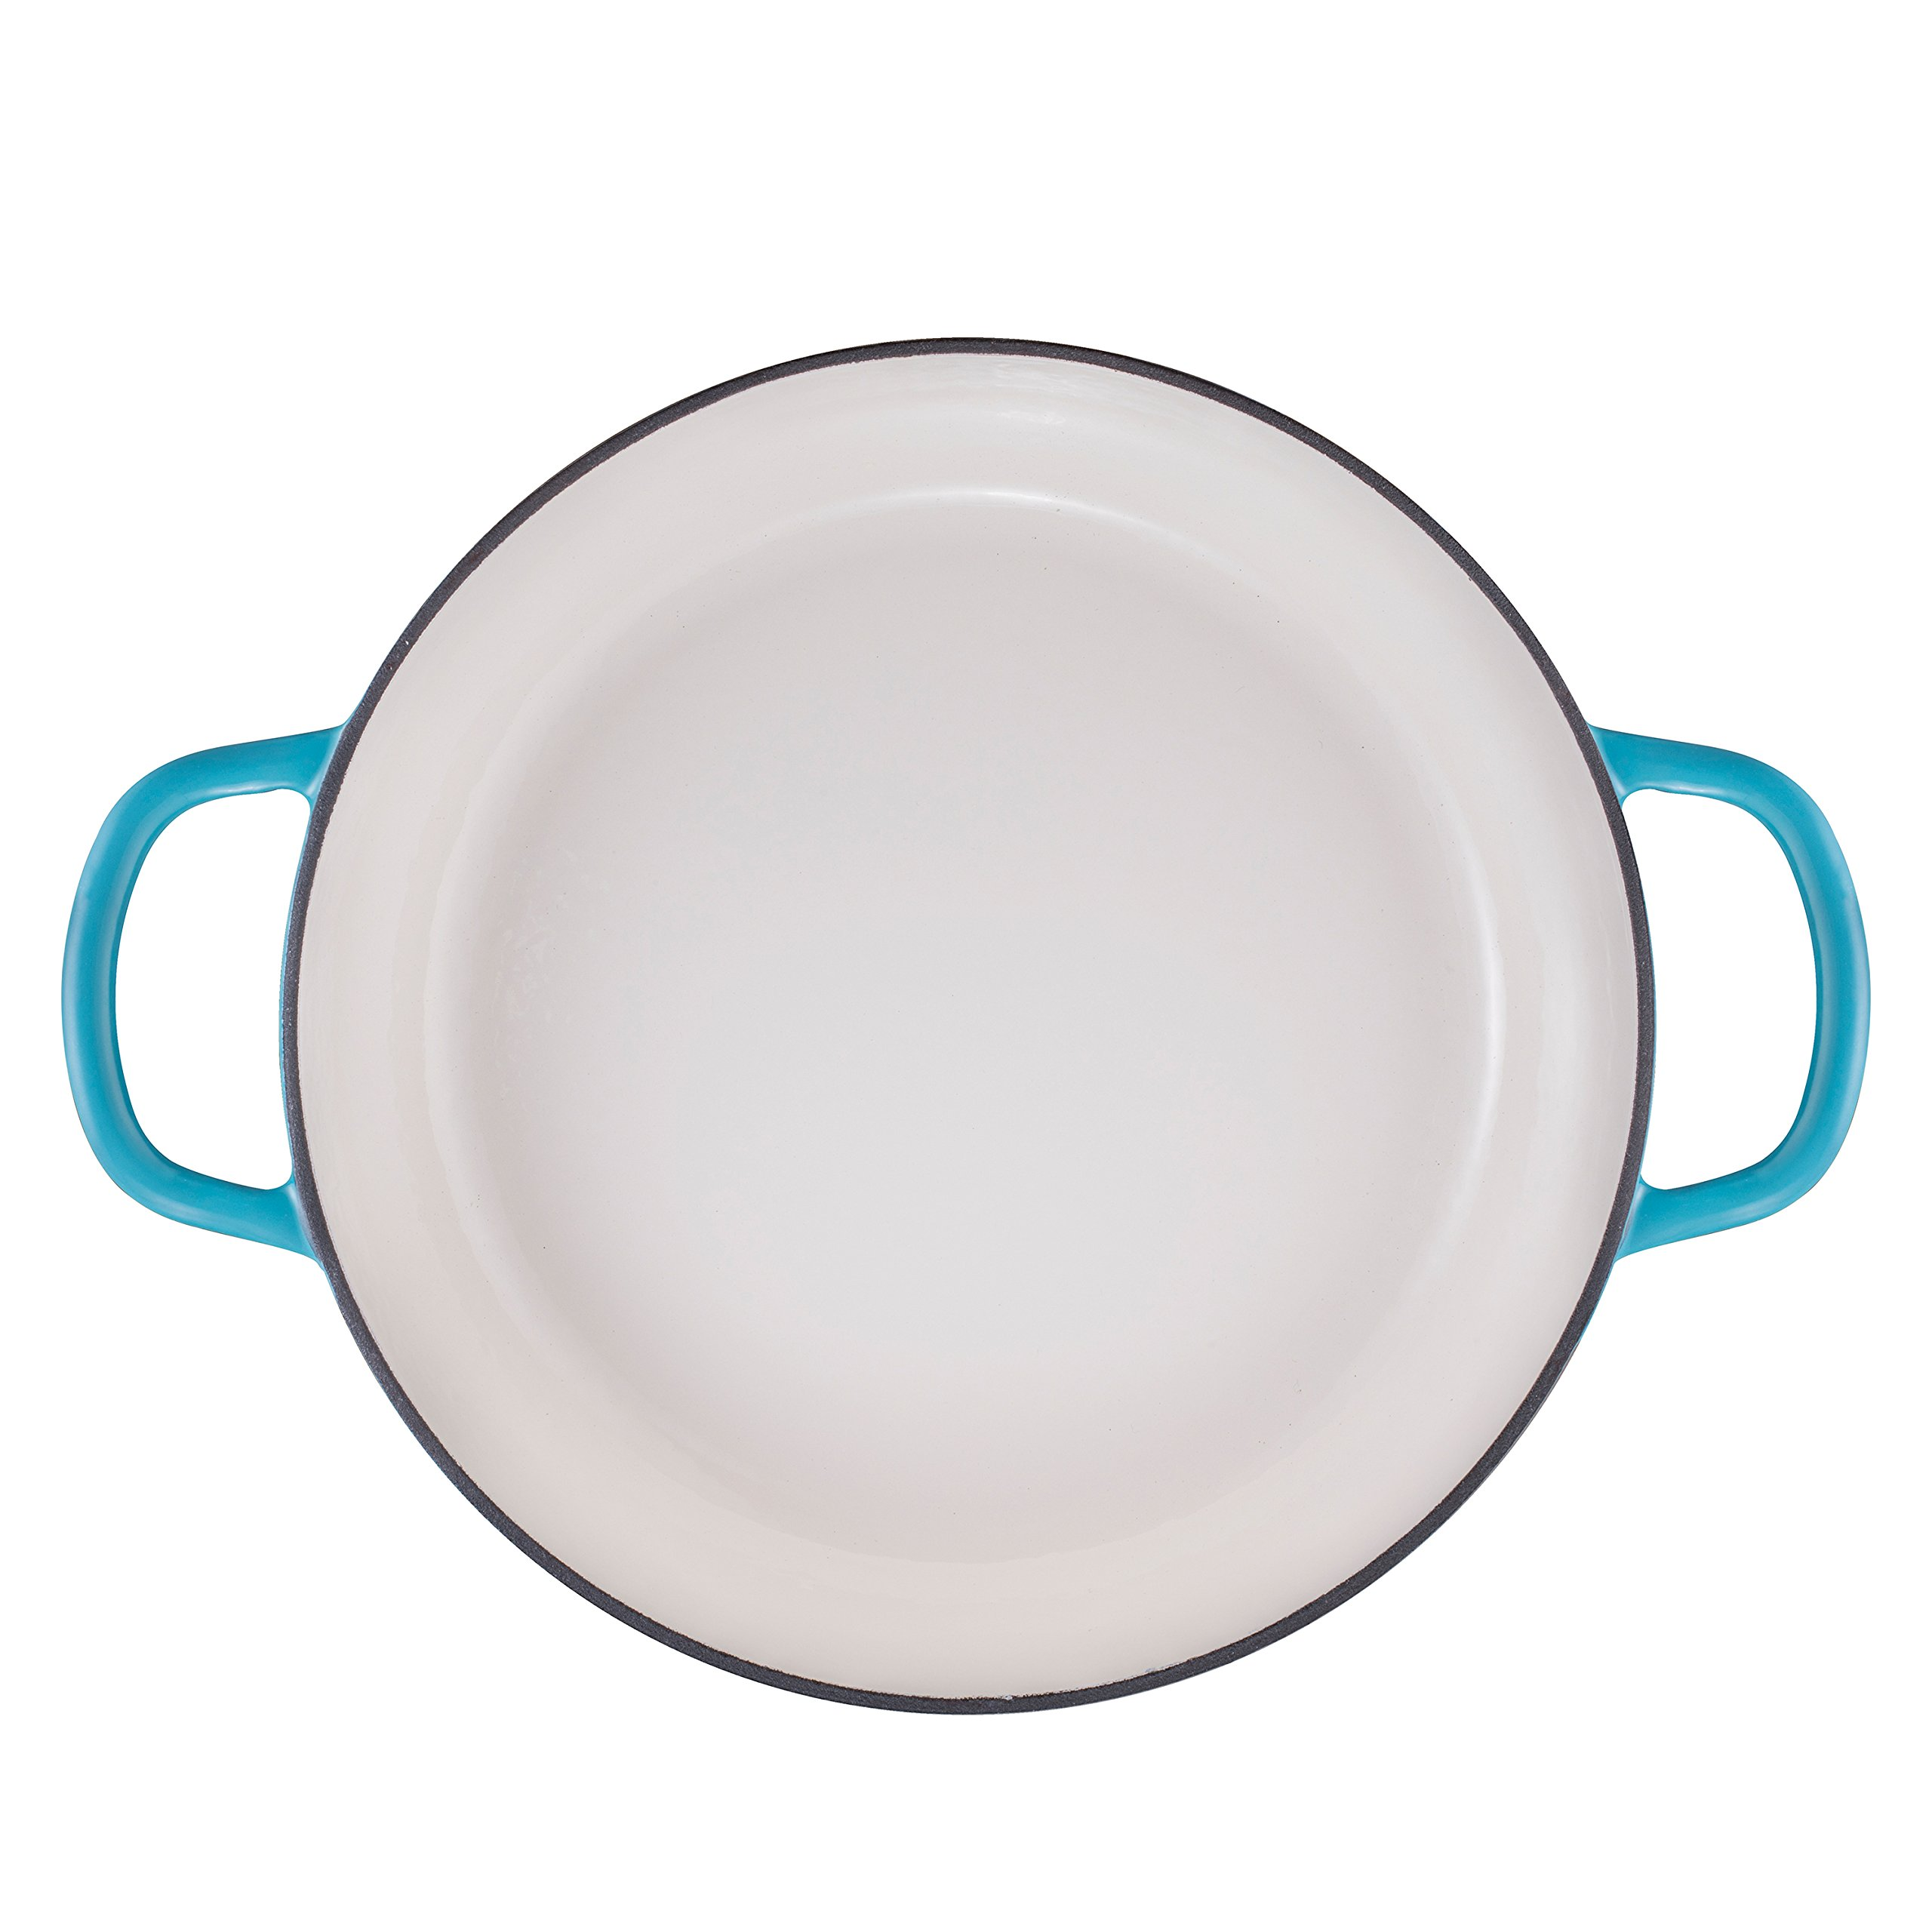 Enameled Cast Iron Shallow Casserole Braiser Pan with Cover, 3.8-Quart, Marine Blue by Bruntmor (Image #8)